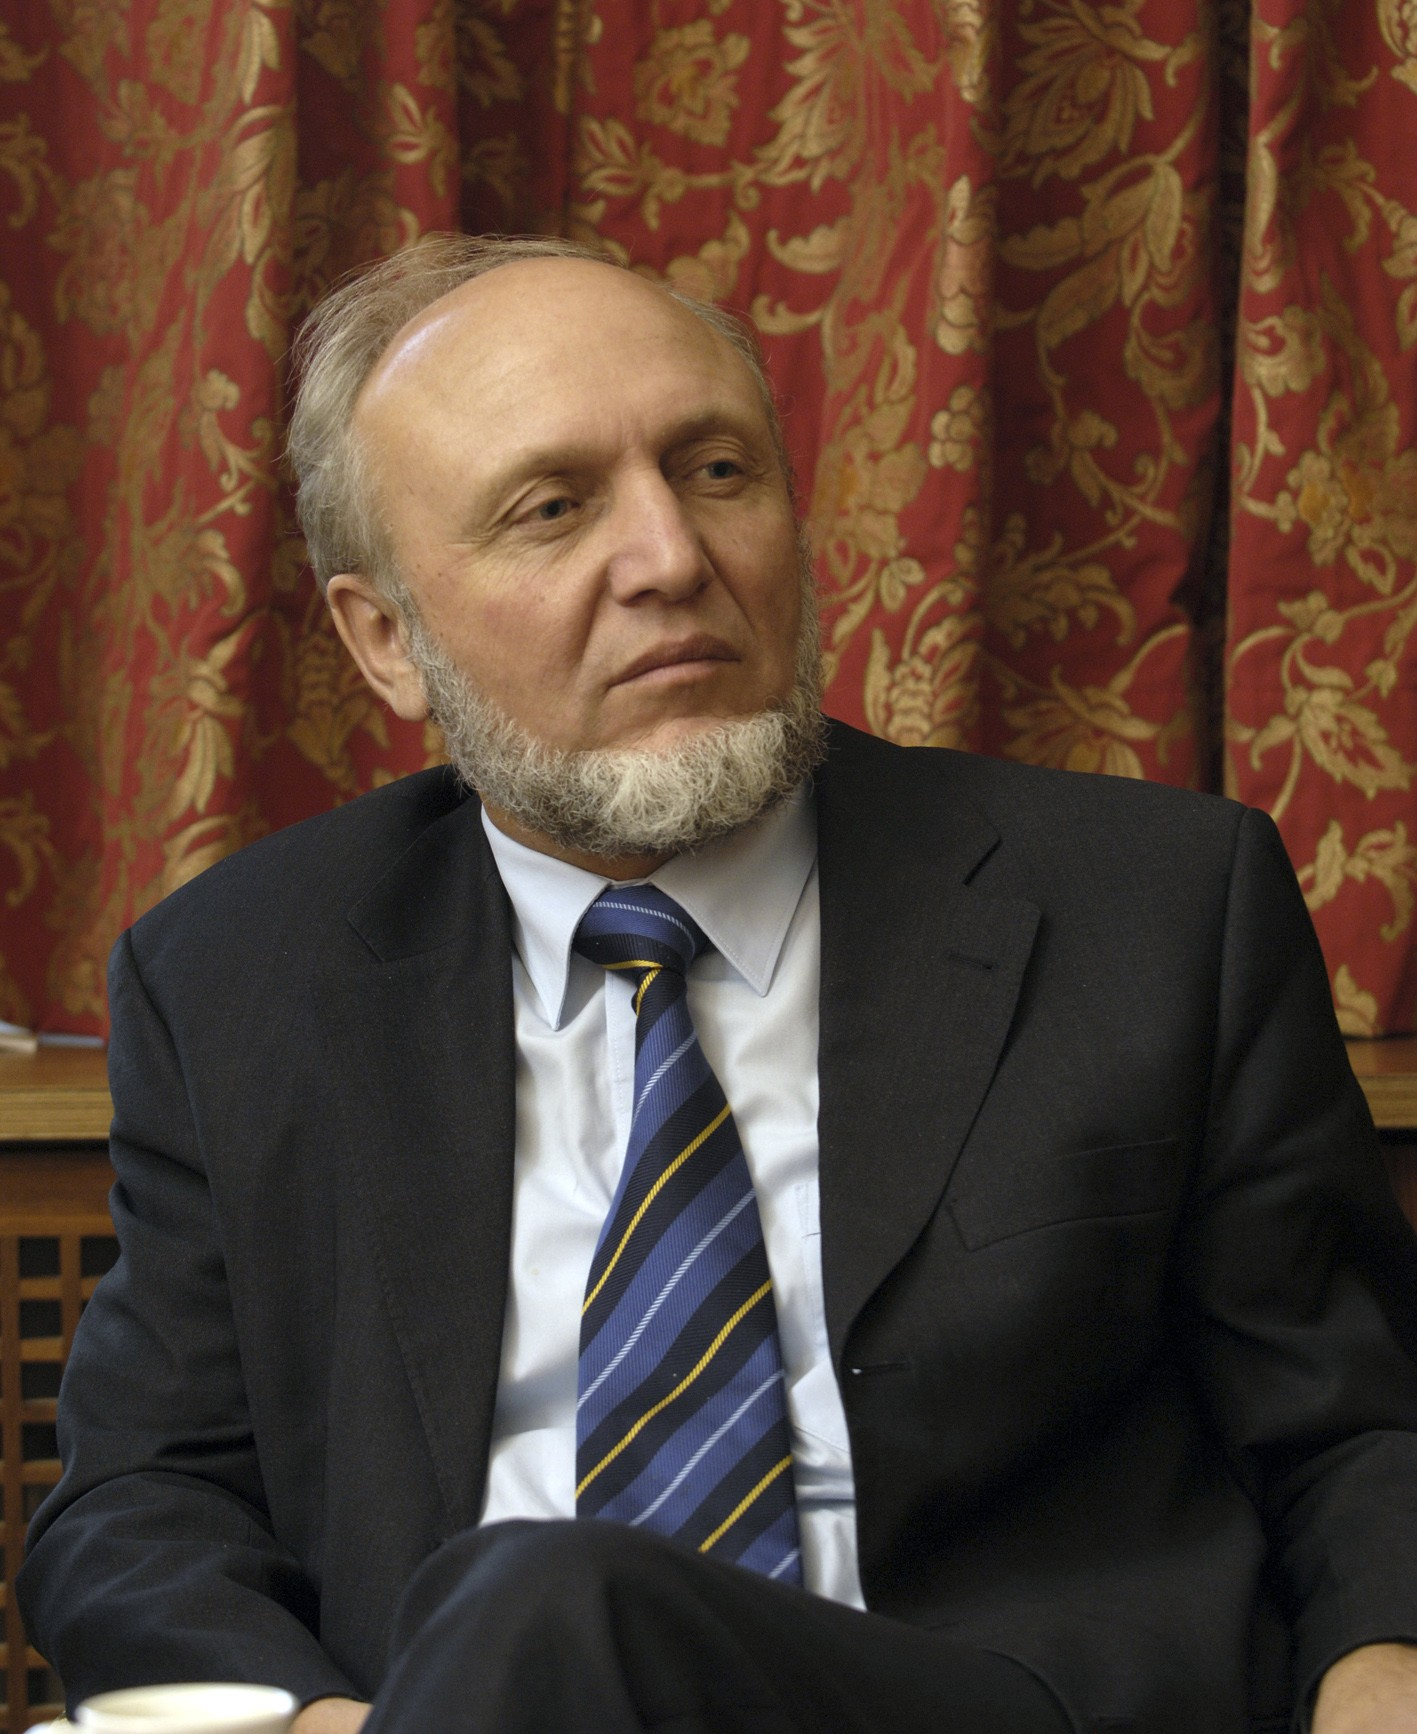 Image result for wikimedia commons hans werner sinn